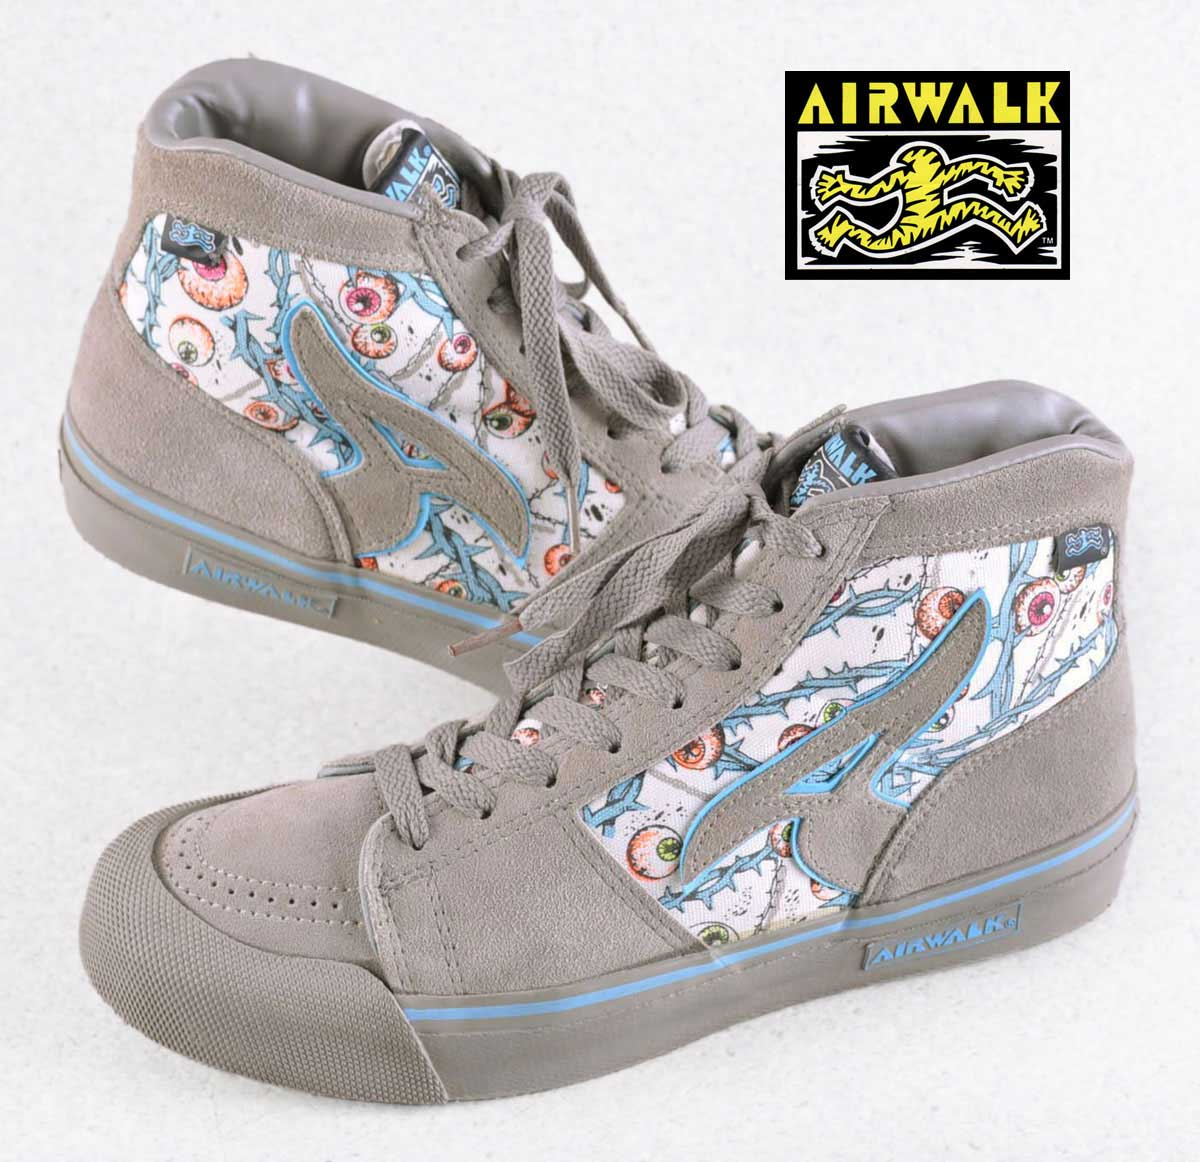 Vintage 1980s   AIRWALK air walk   skating shoes   large A EYEBALL eye ball    gray eyeball whole pattern   JPN27.5cm 5a4447624